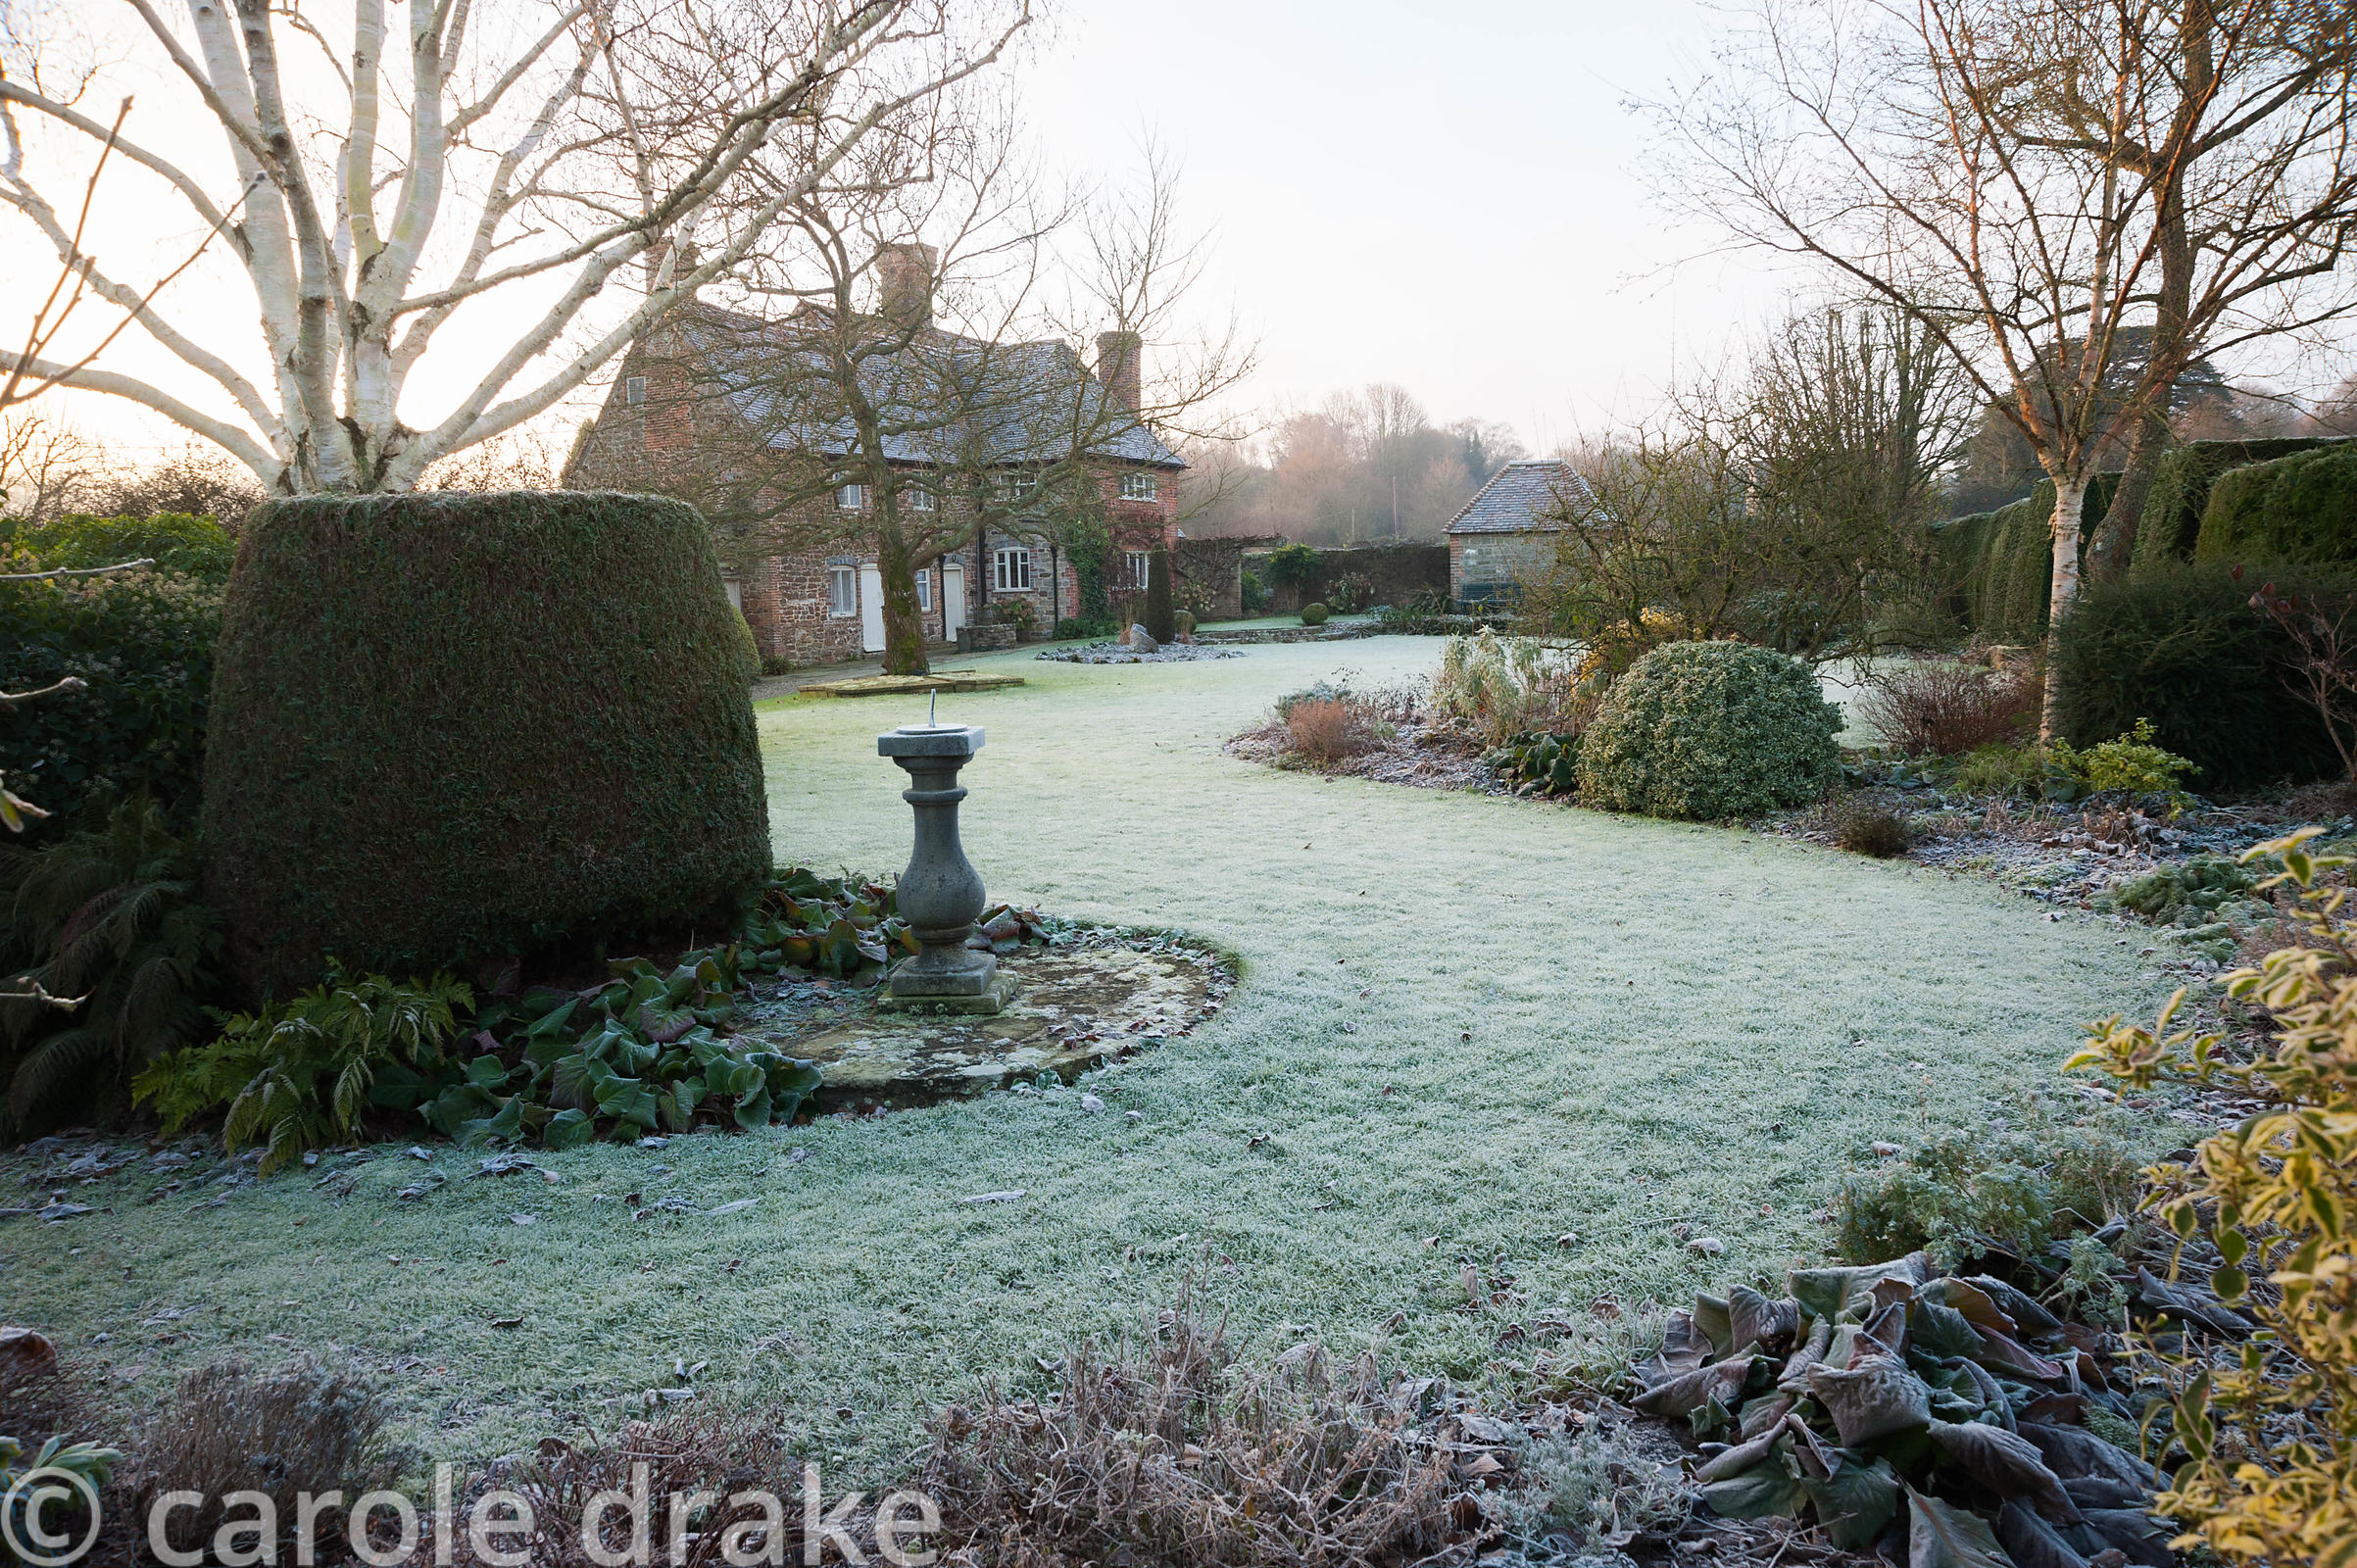 Frosty garden with mixed borders, clipped evergreens, white stemmed birches and a birdbath with Elizabethan house beyond. Coa...